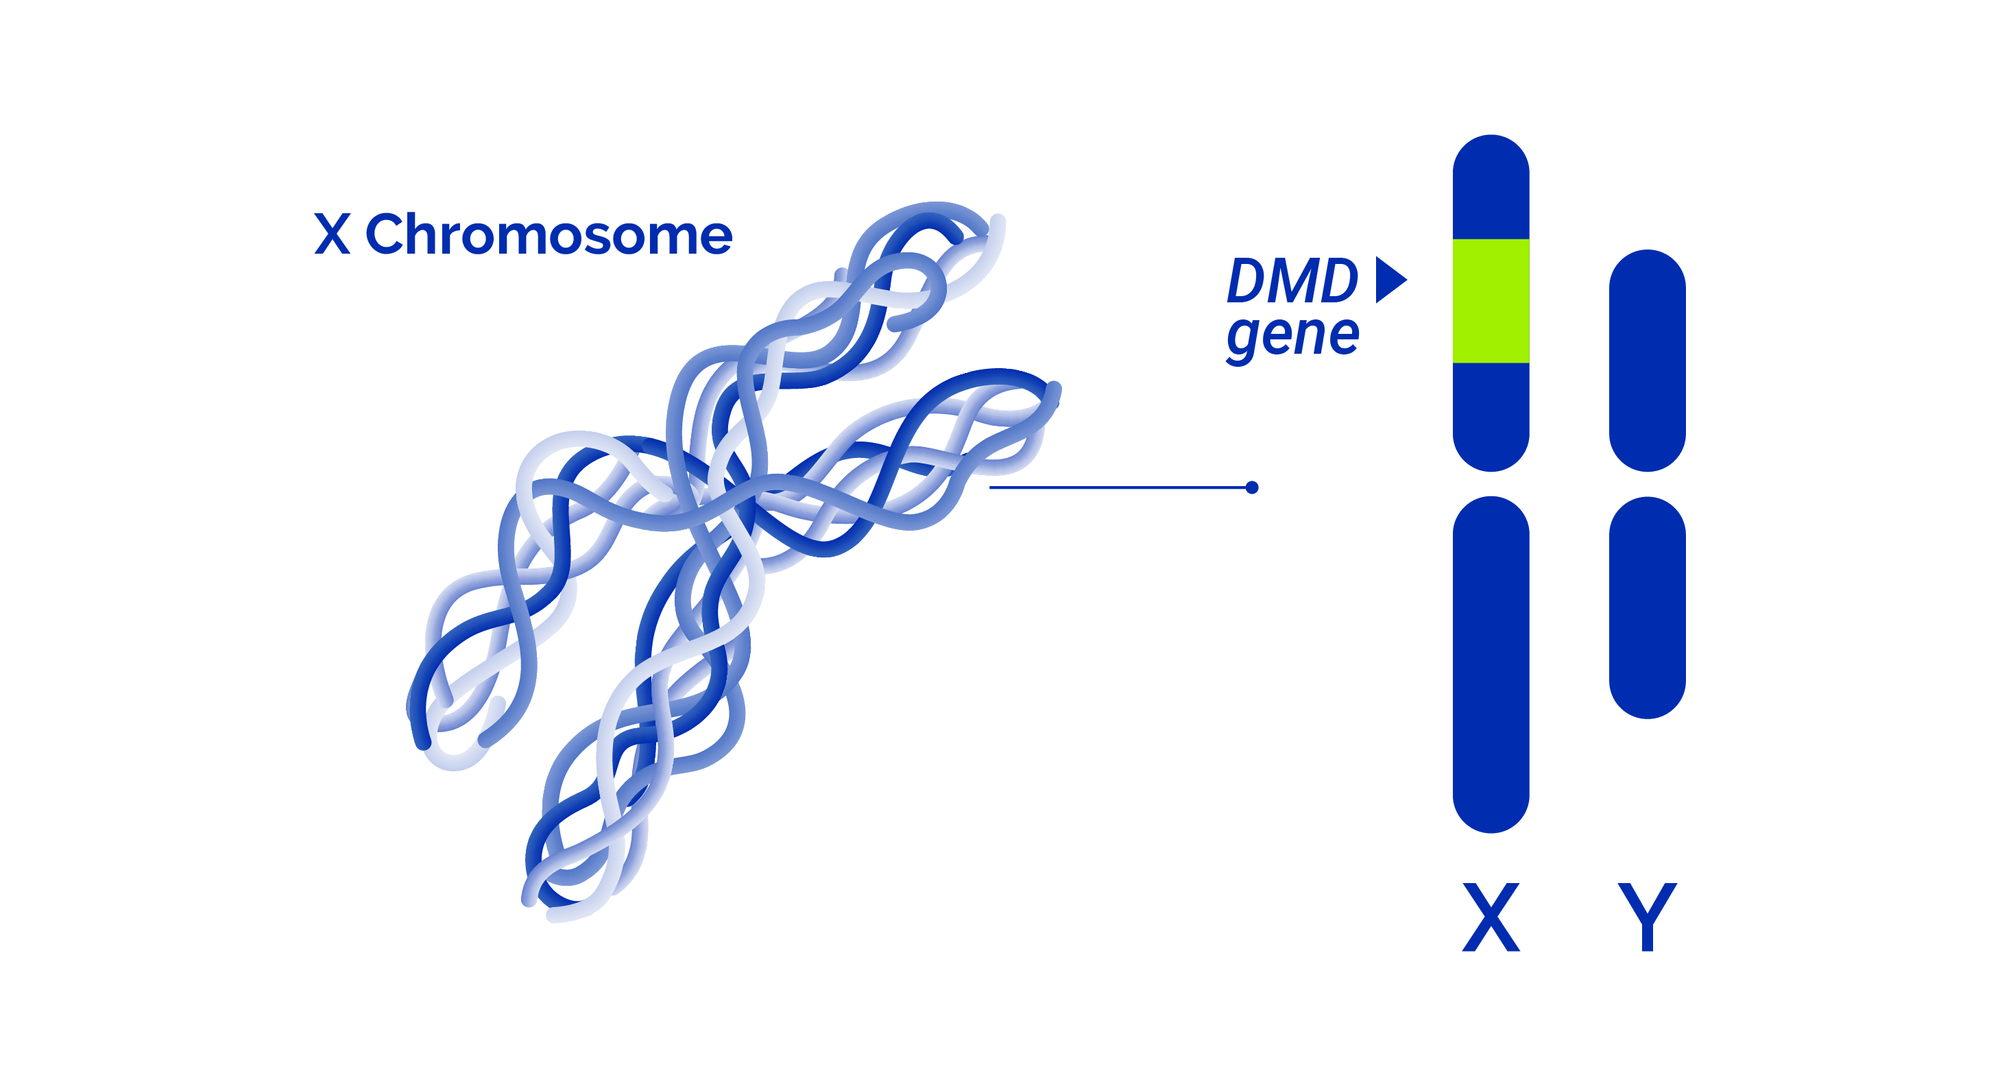 Duchenne and becker muscular dystrophy related DMD gene is located on the X chromosome.